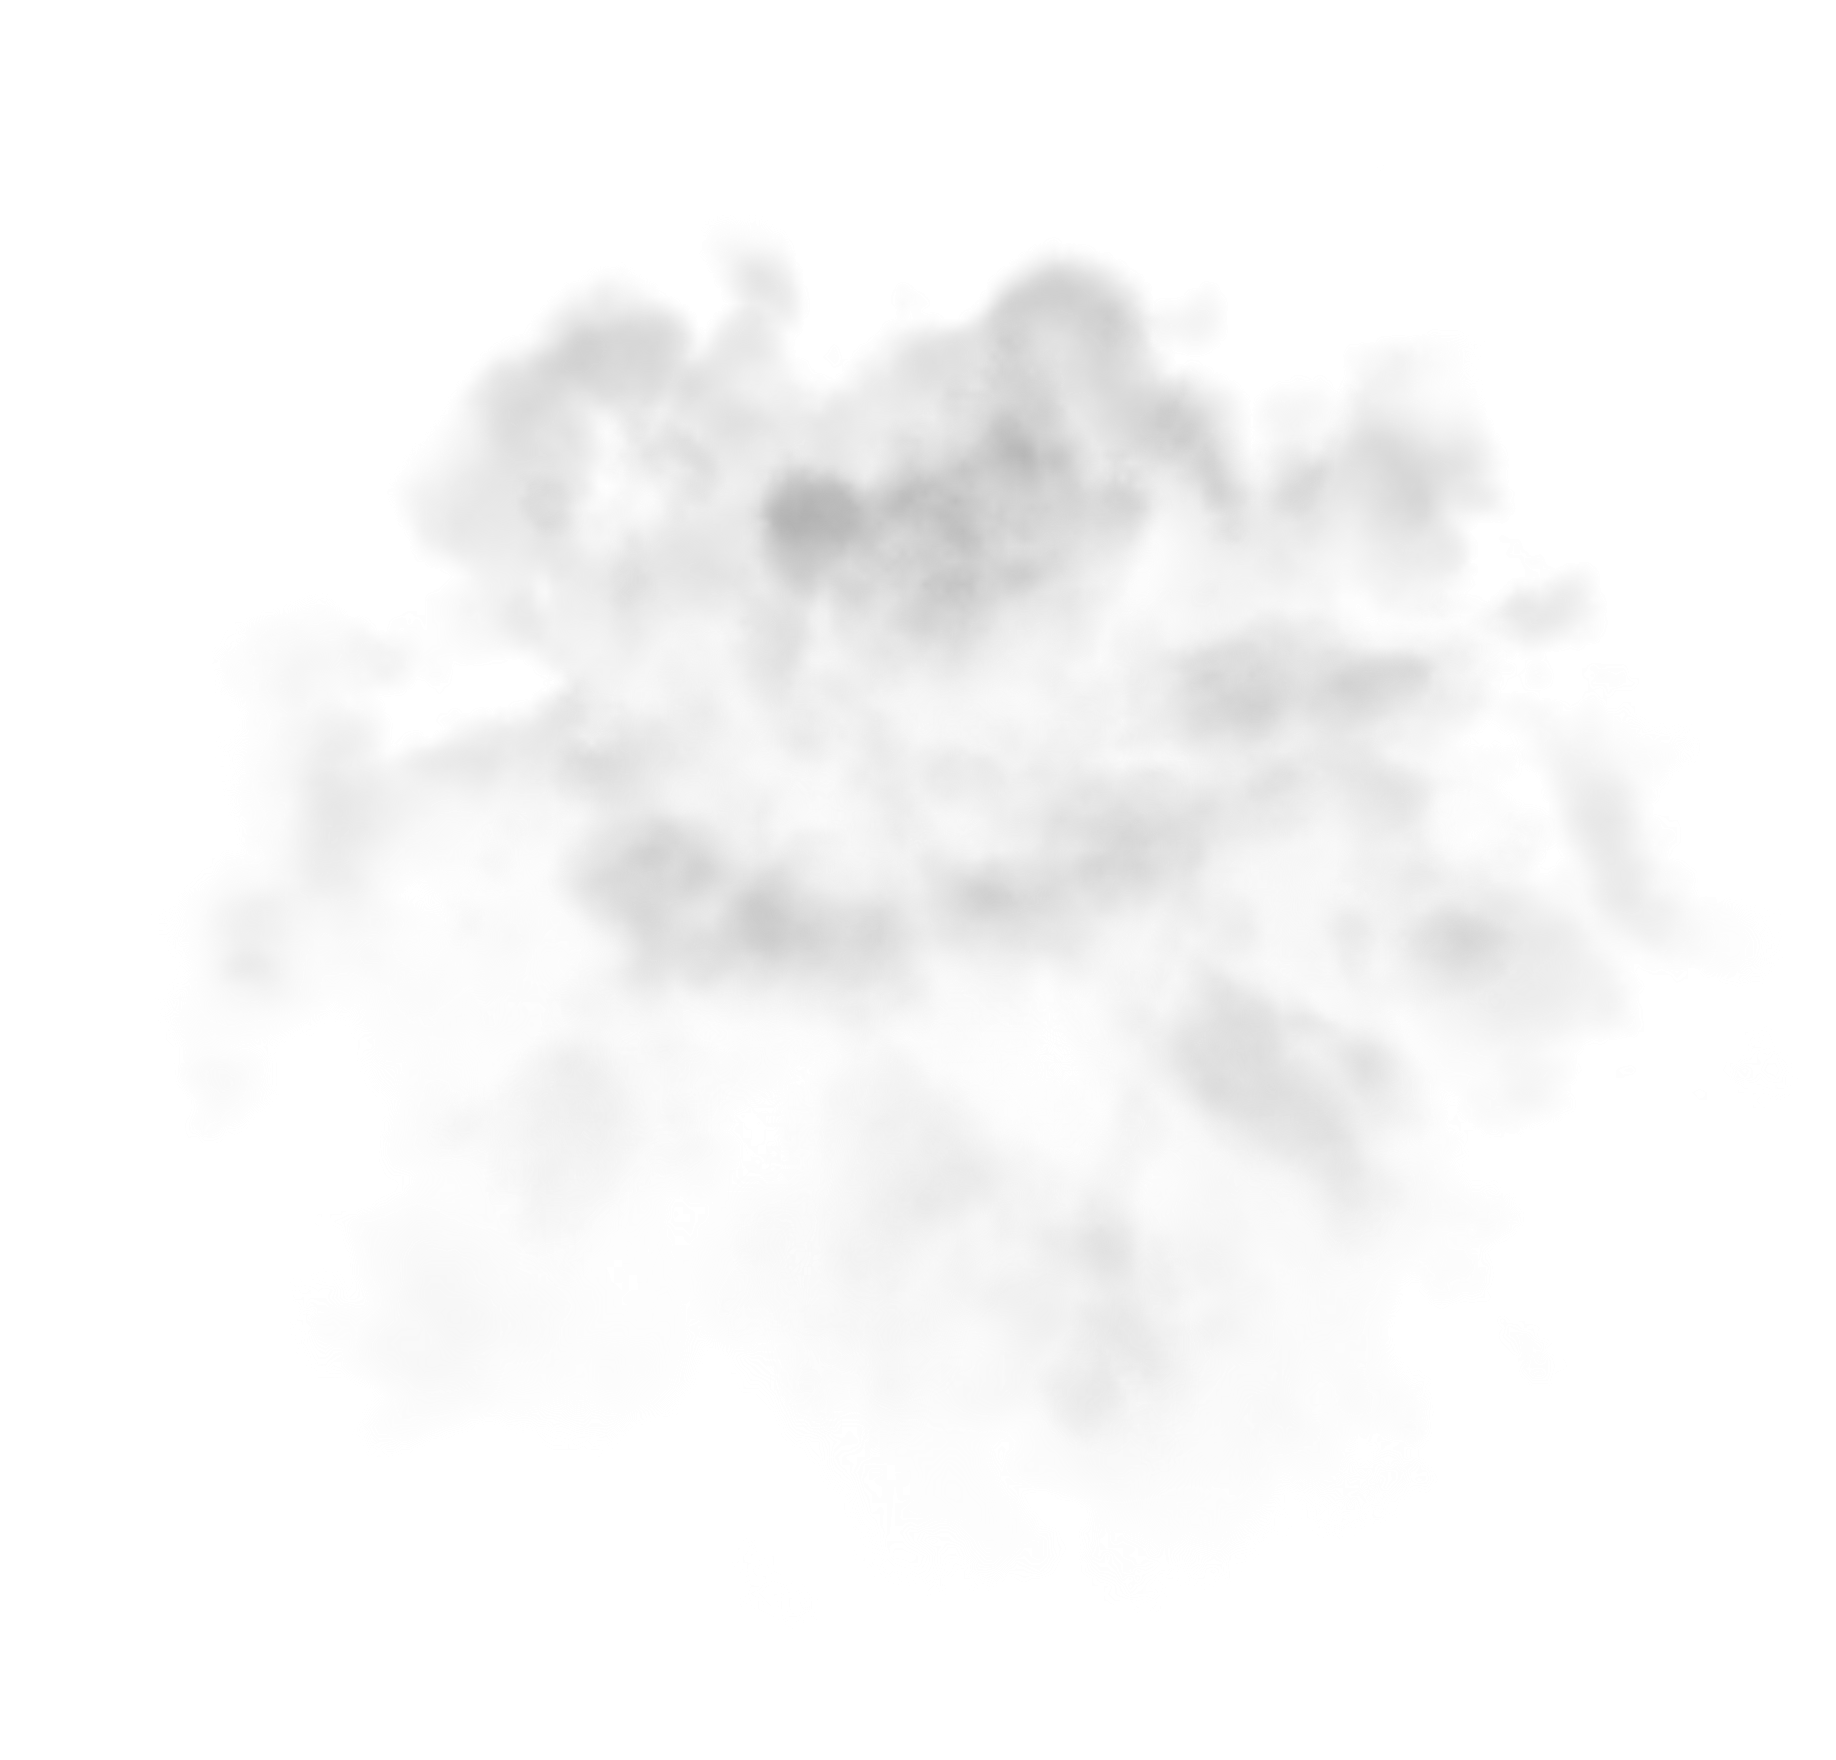 Hd transparent images pluspng. Puff of smoke png